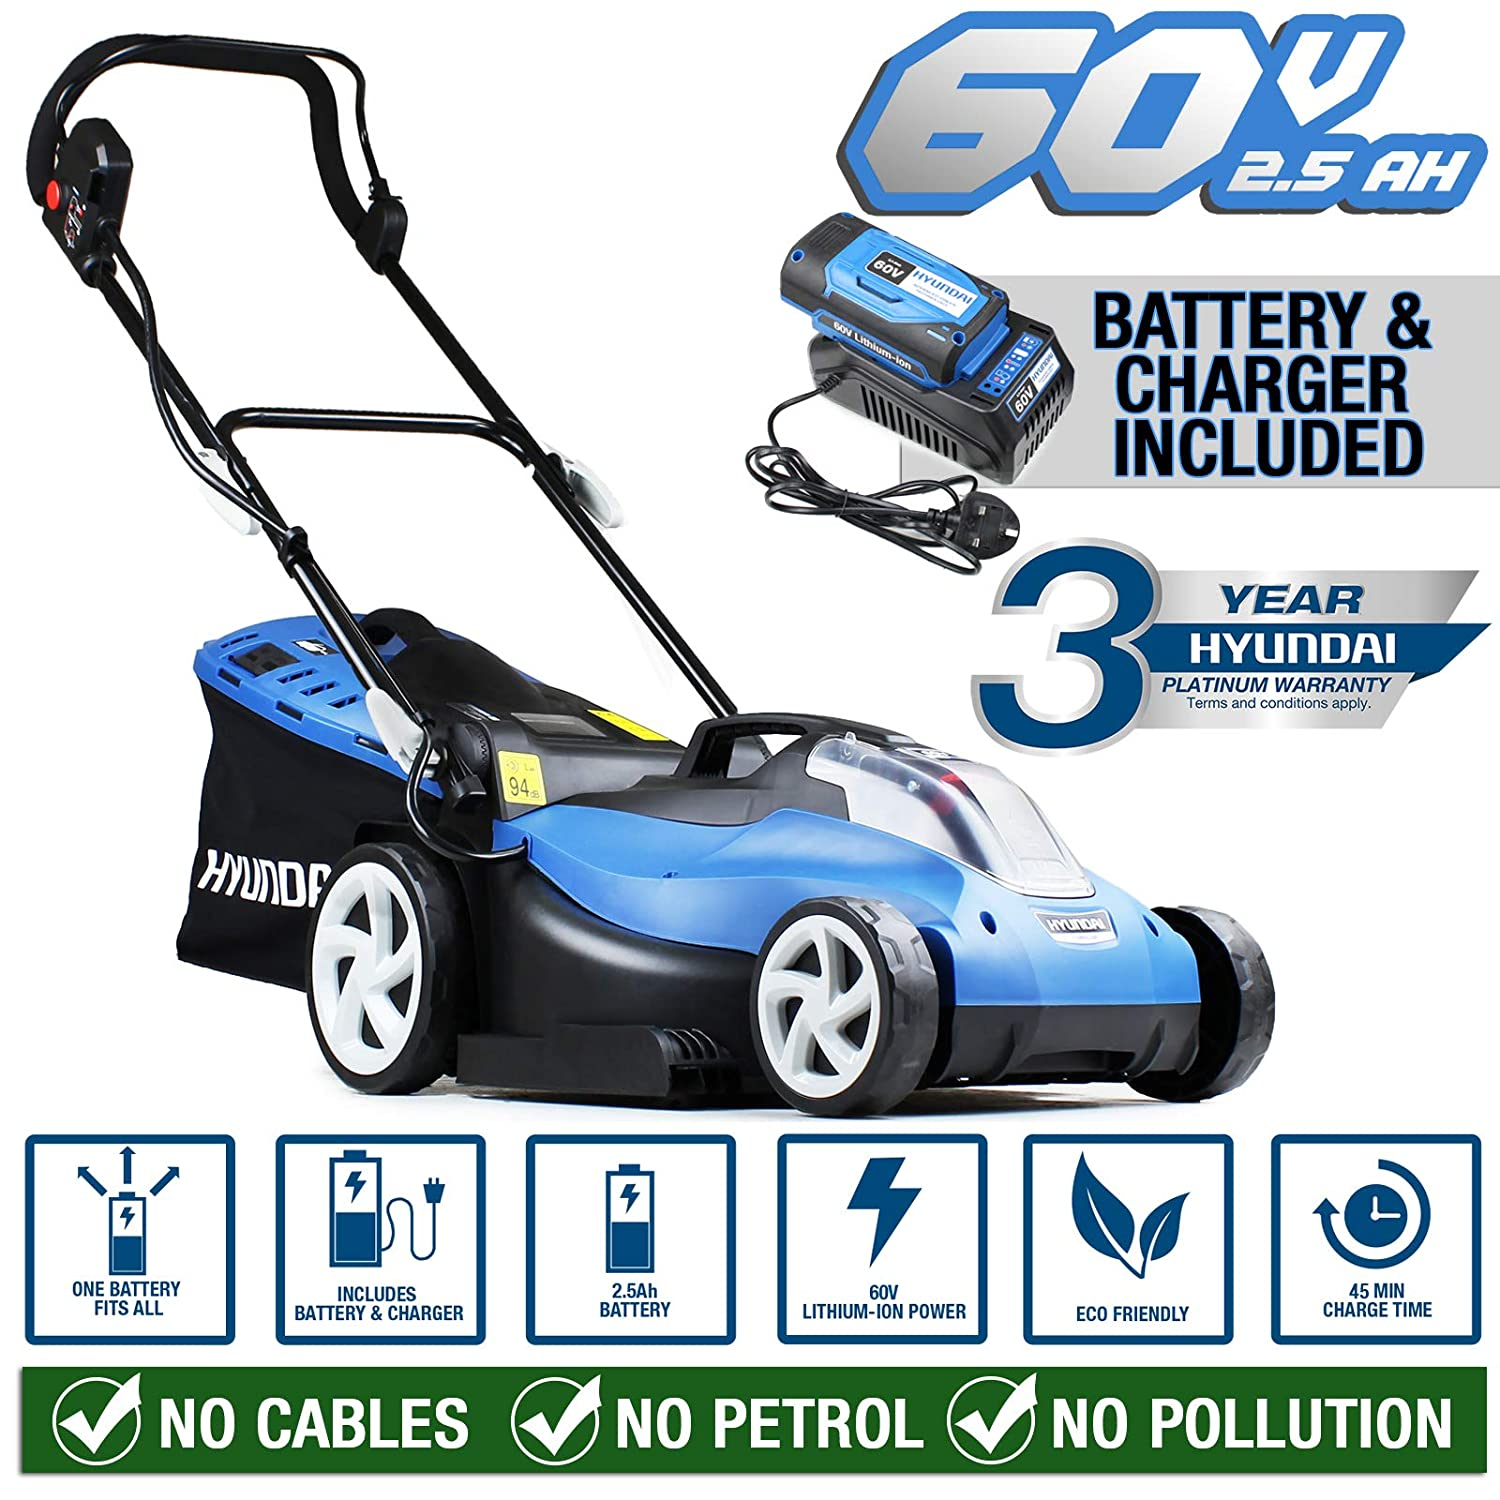 Hyundai Cordless Battery Powered Lawn Mower Cutting Width 42cm With